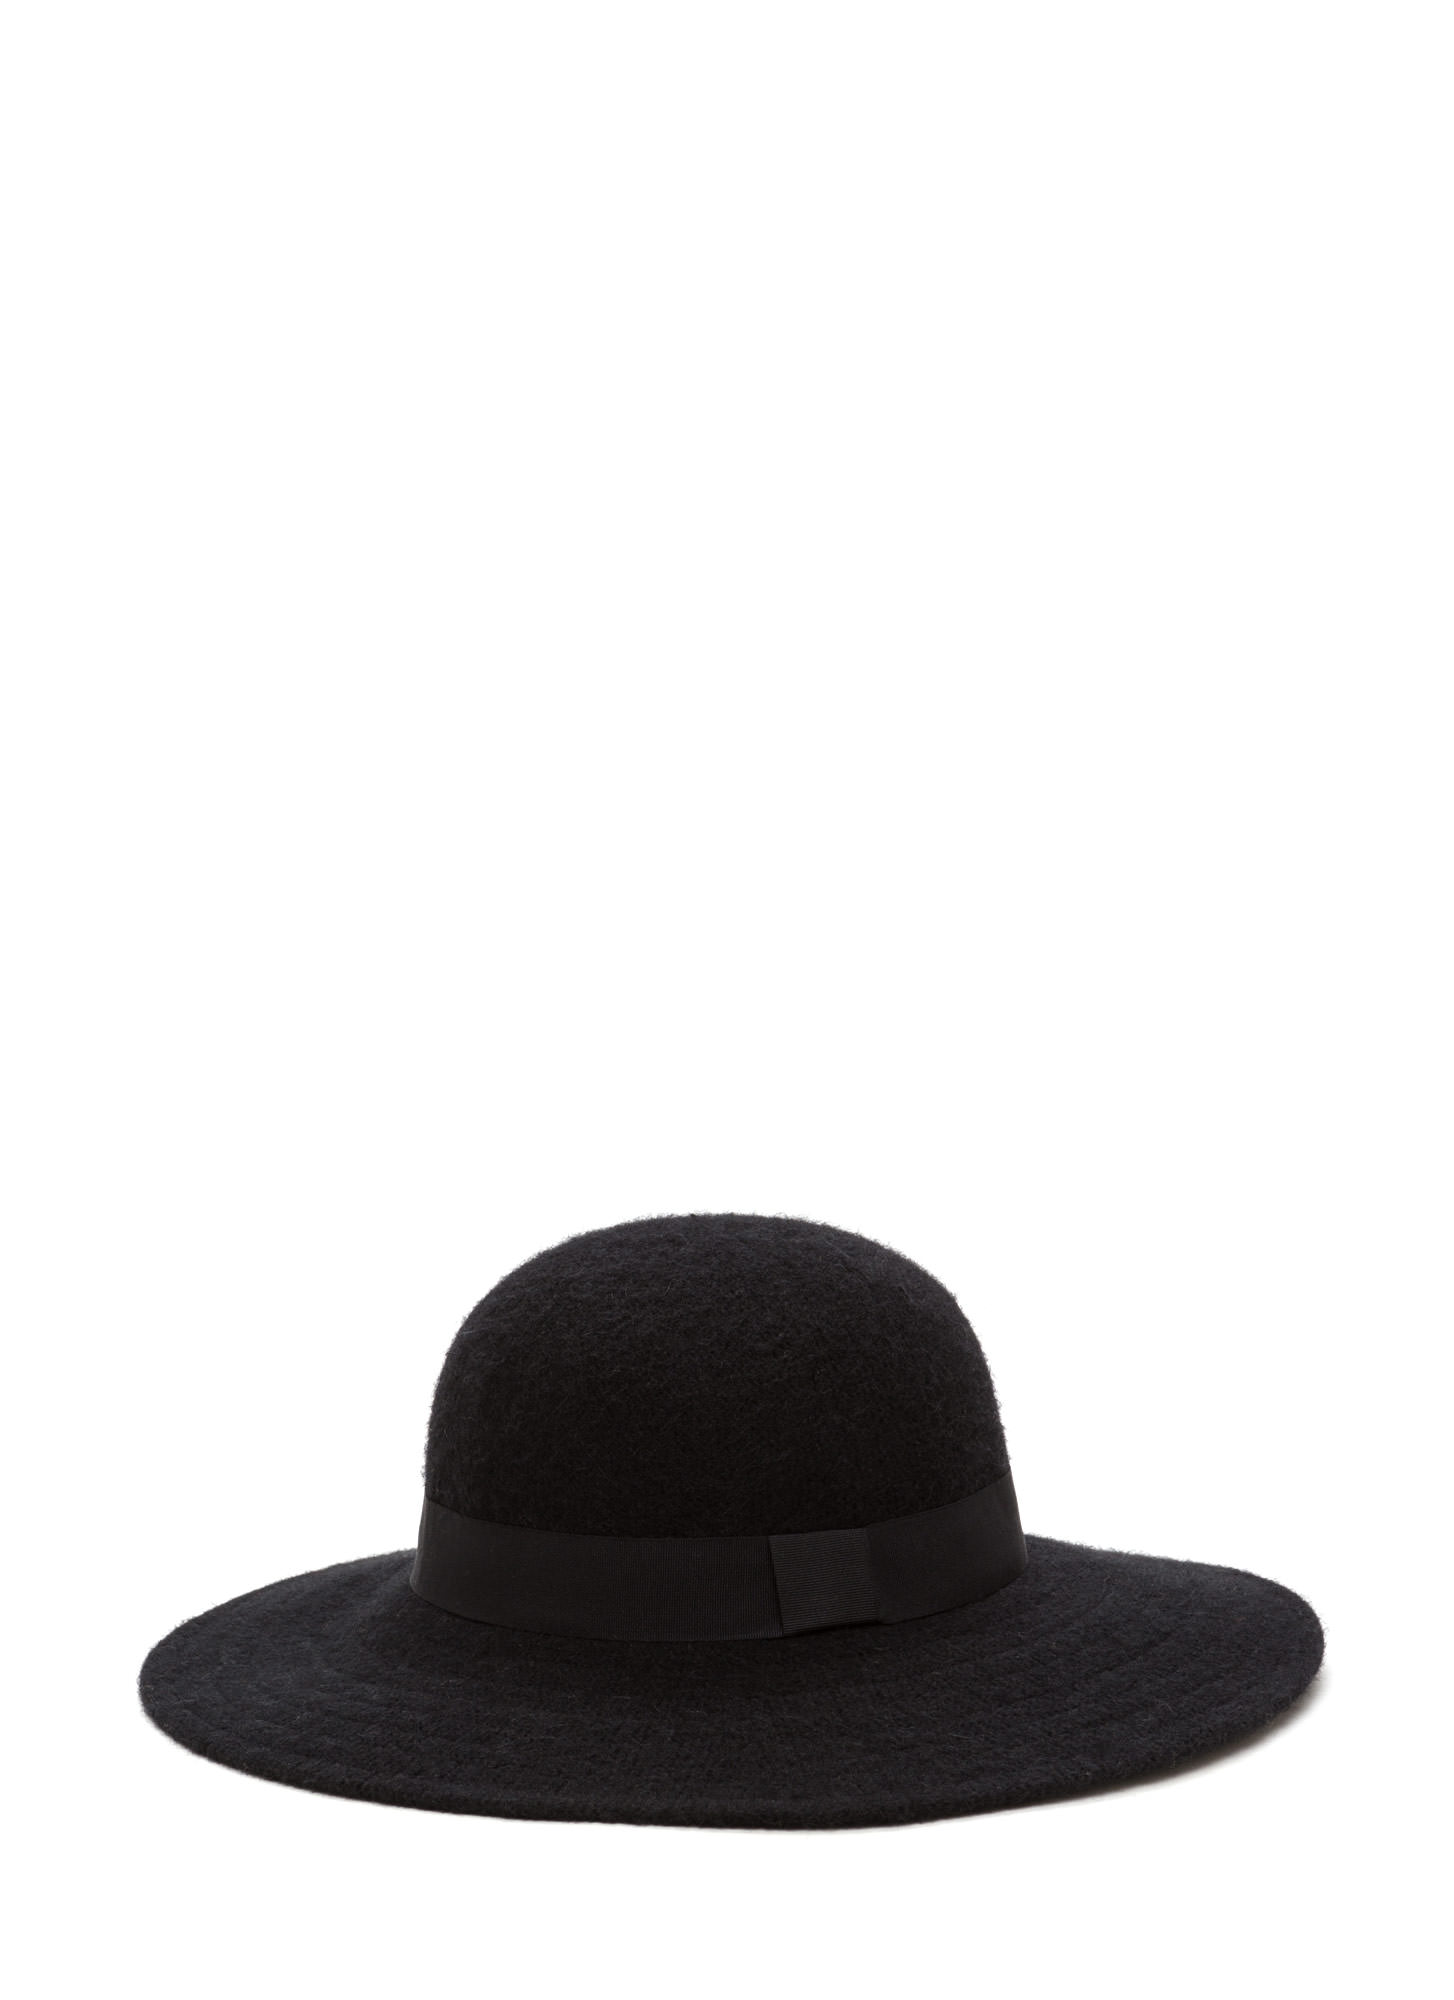 Park Slope Trip Wide Brim Wool Hat BLACK